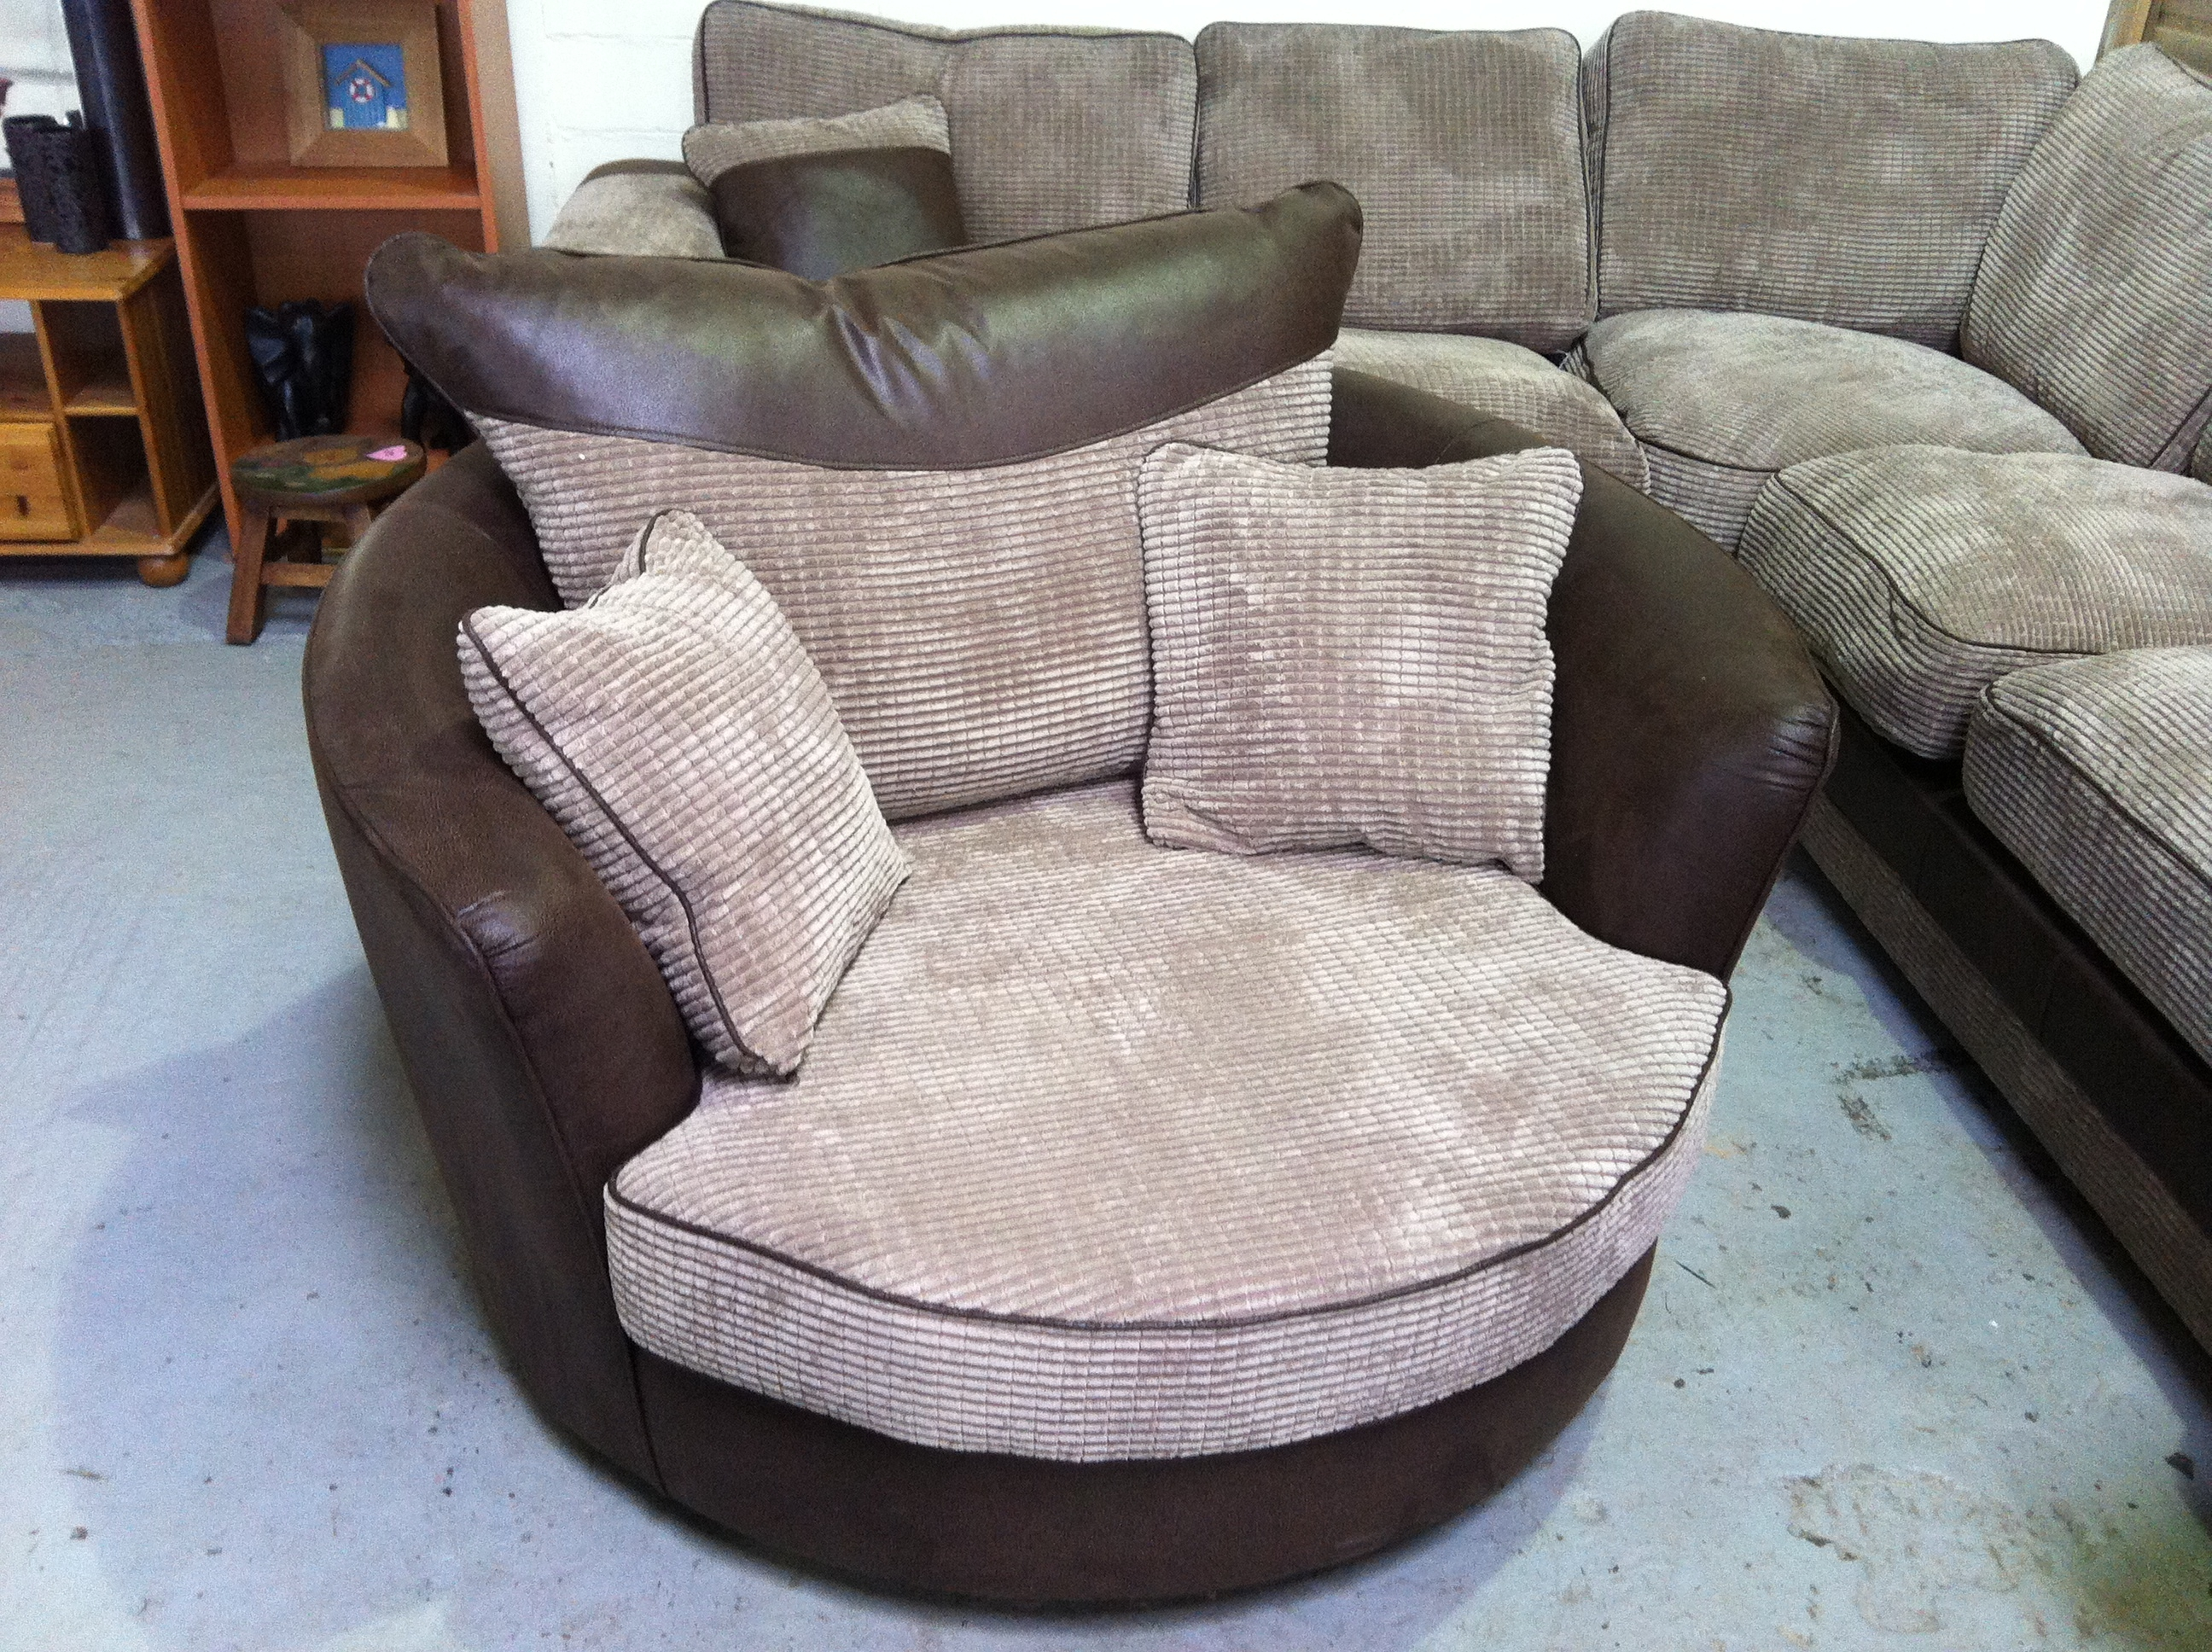 Sofas Center Swivel Sofa Chair And Setround Chairsofa Set Round Inside Sofa With Swivel Chair (Image 13 of 15)